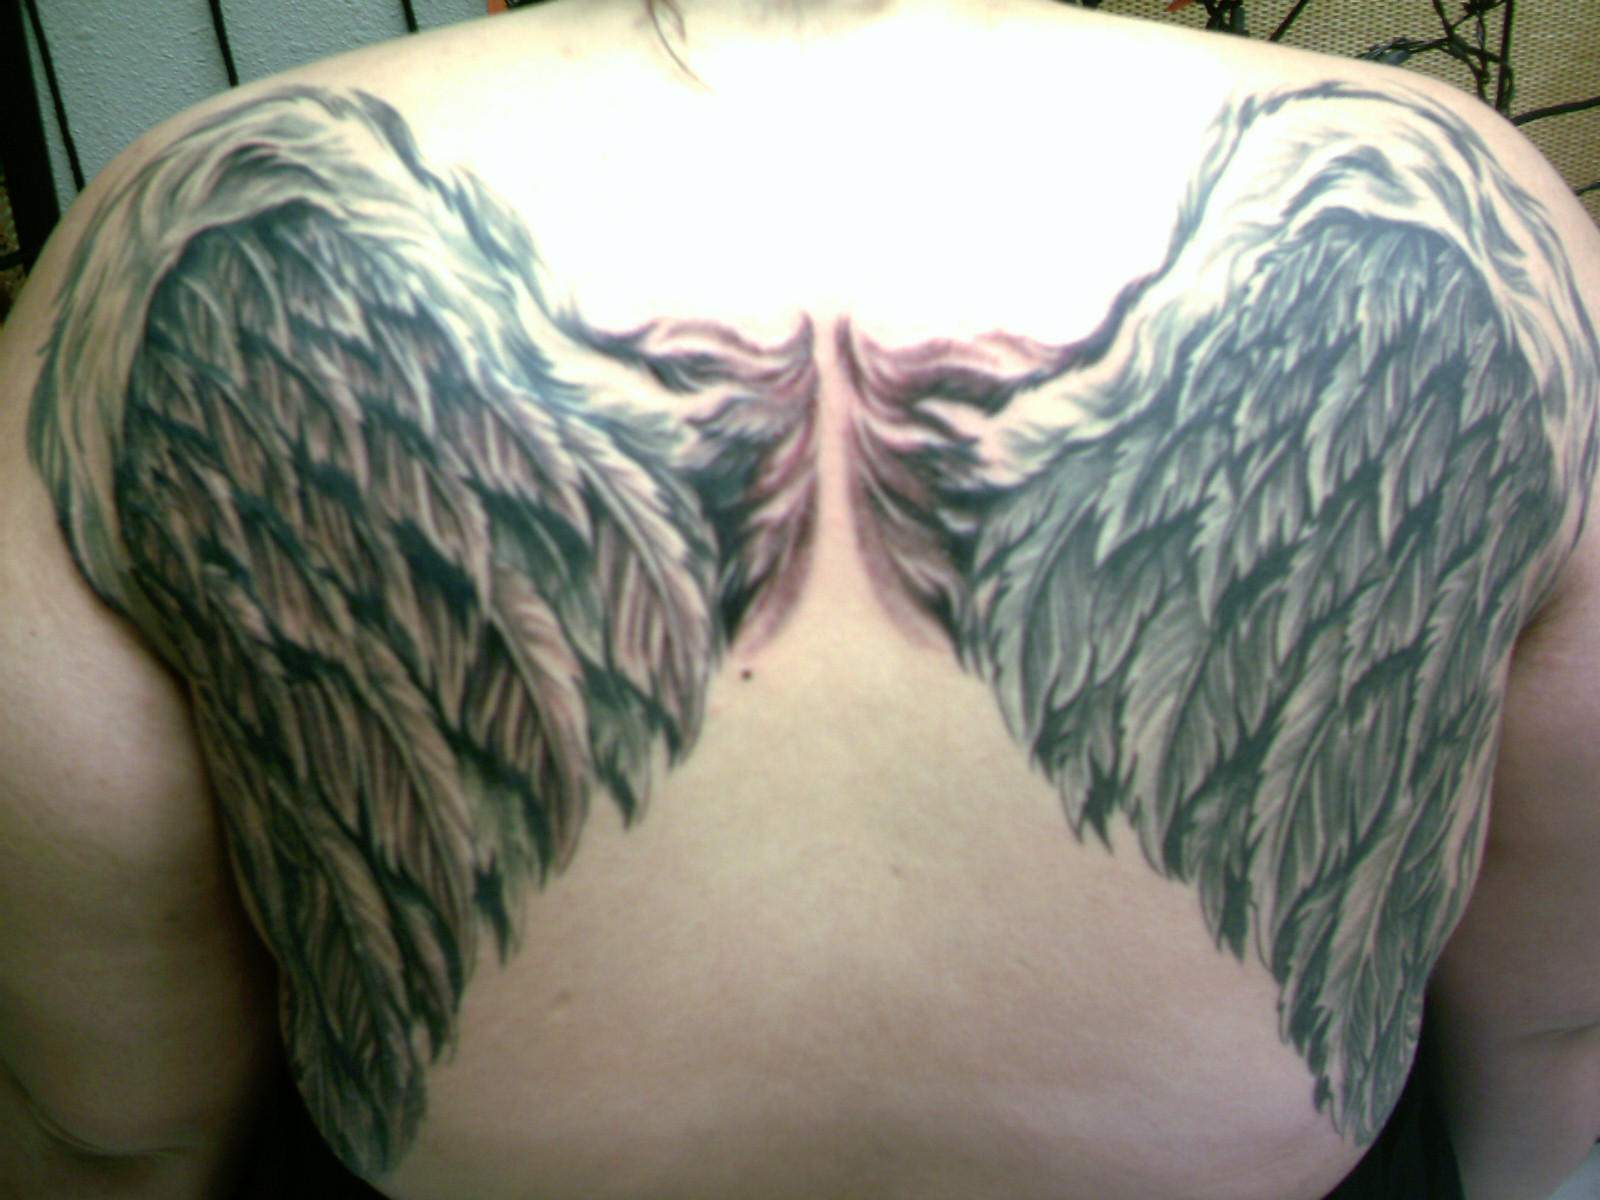 Angel wings tattoo finished by girlbehindtheglass on deviantart